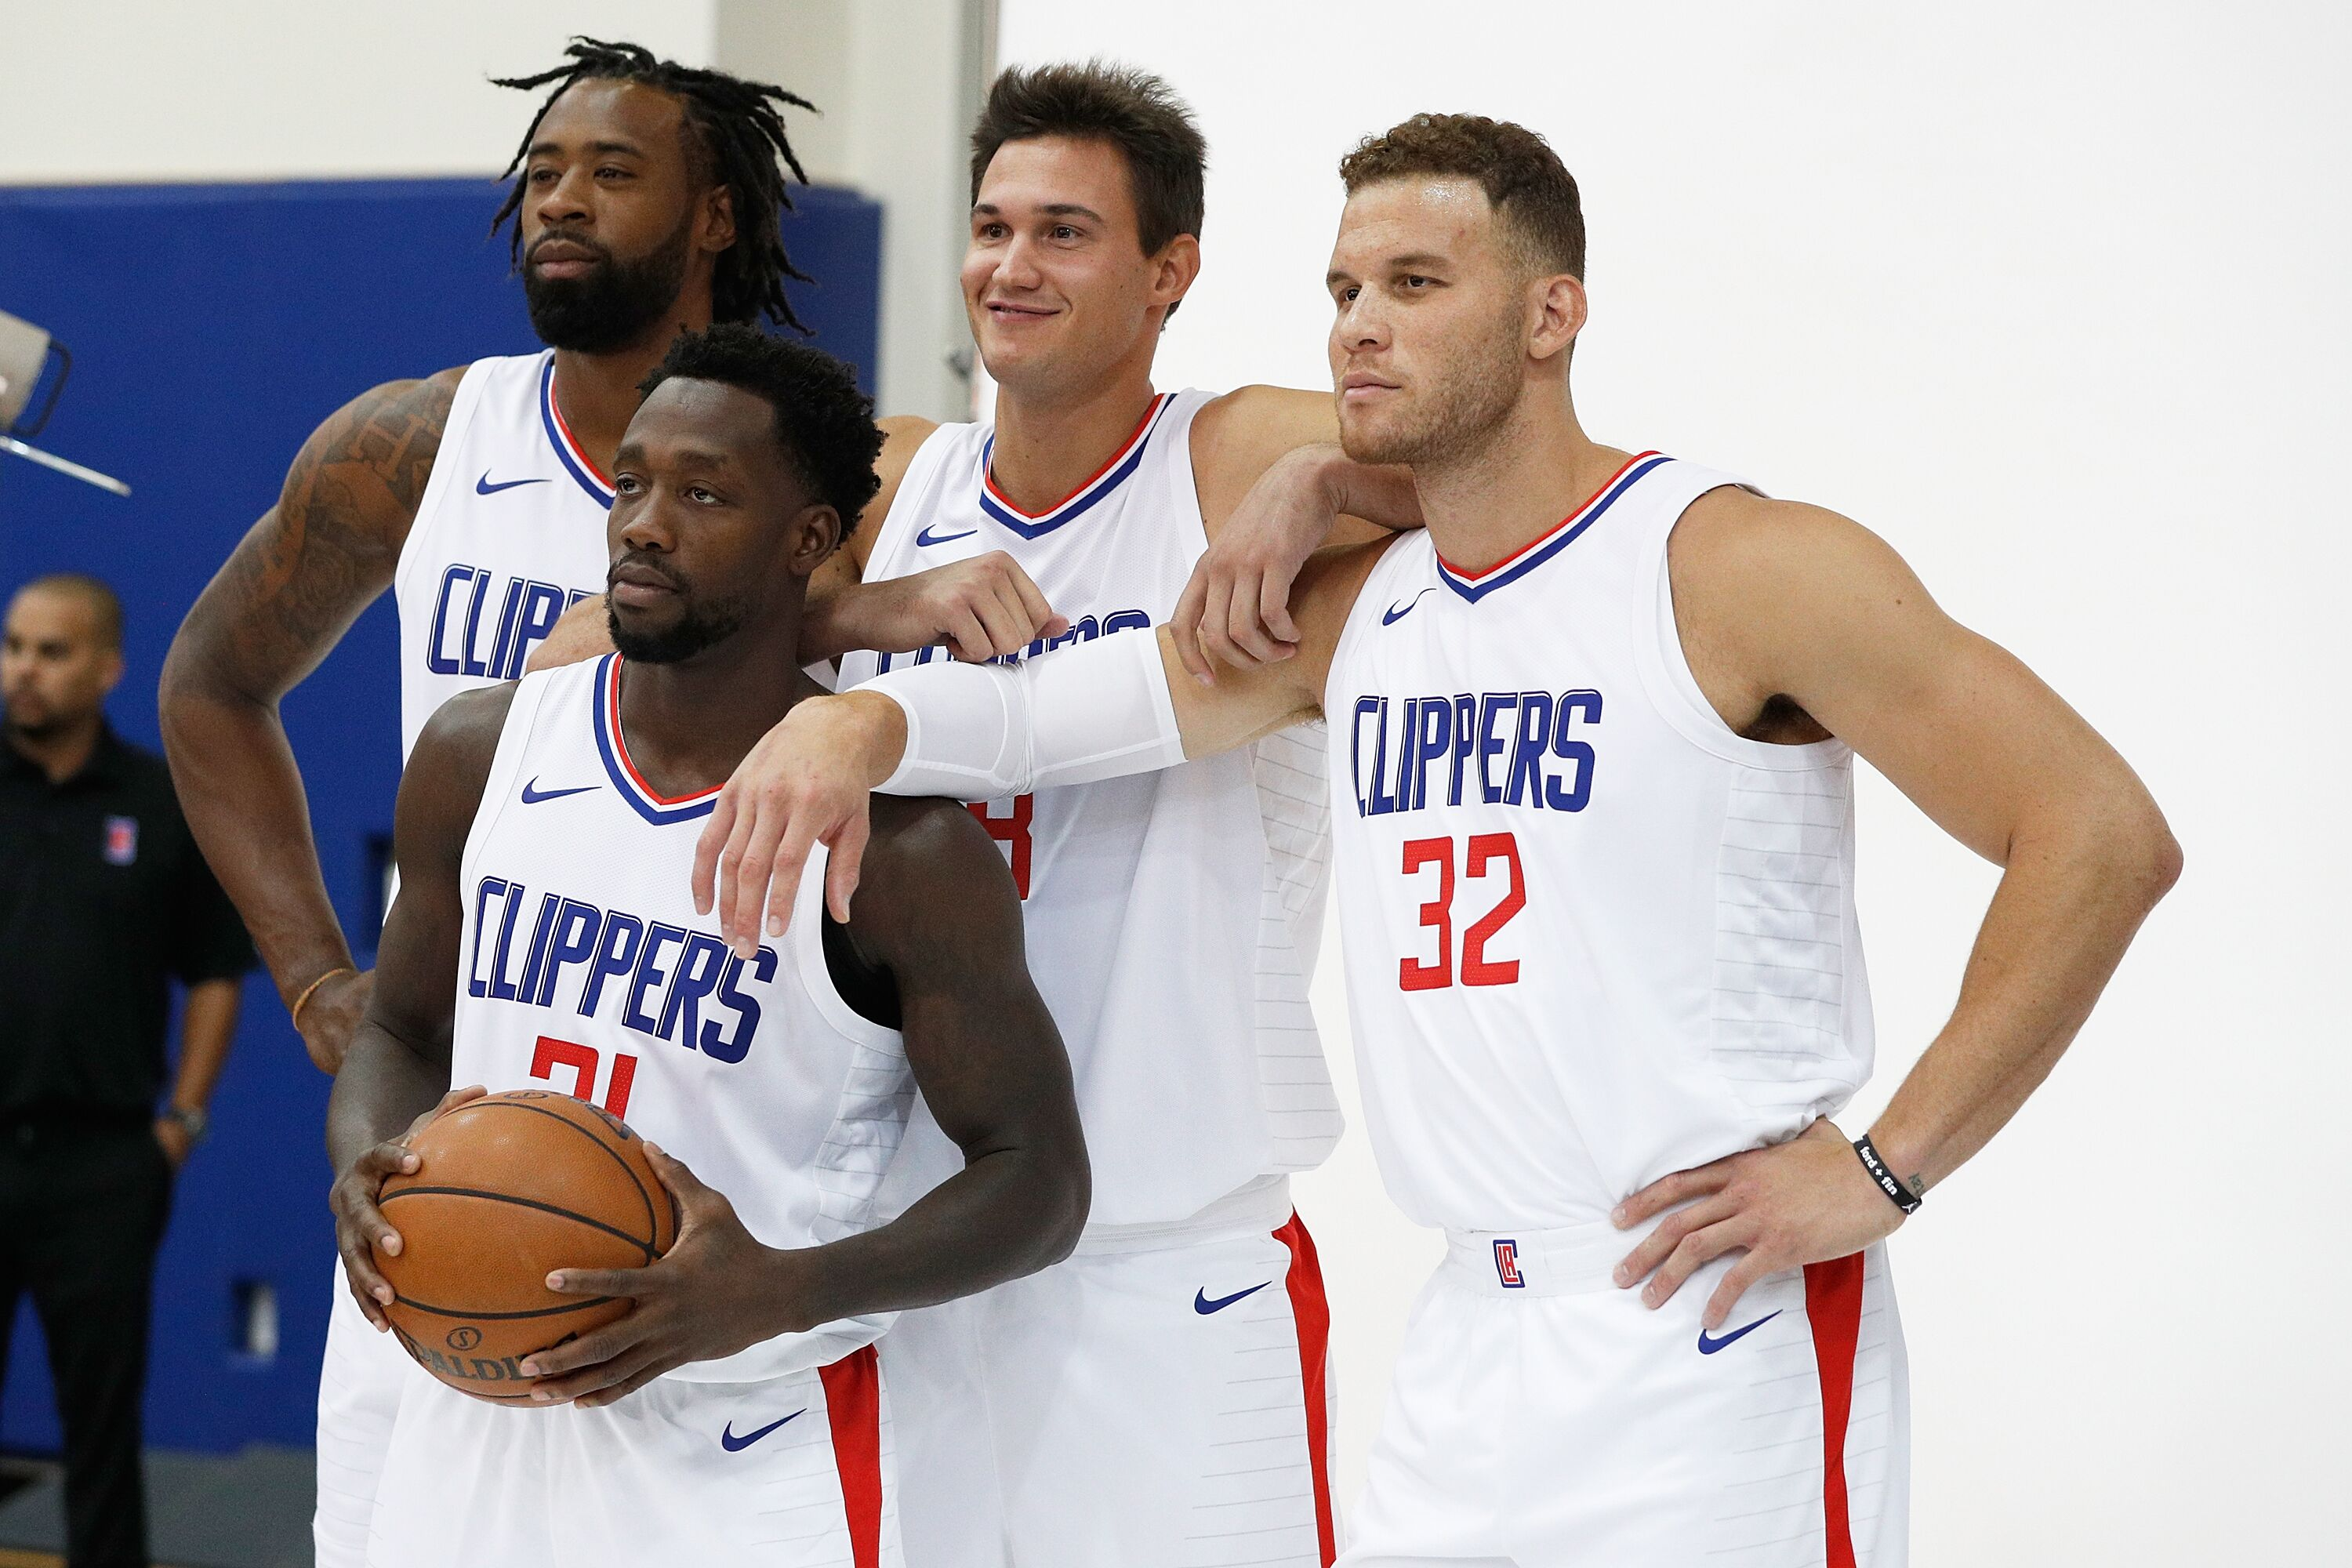 853815206-los-angeles-clippers-media-day.jpg